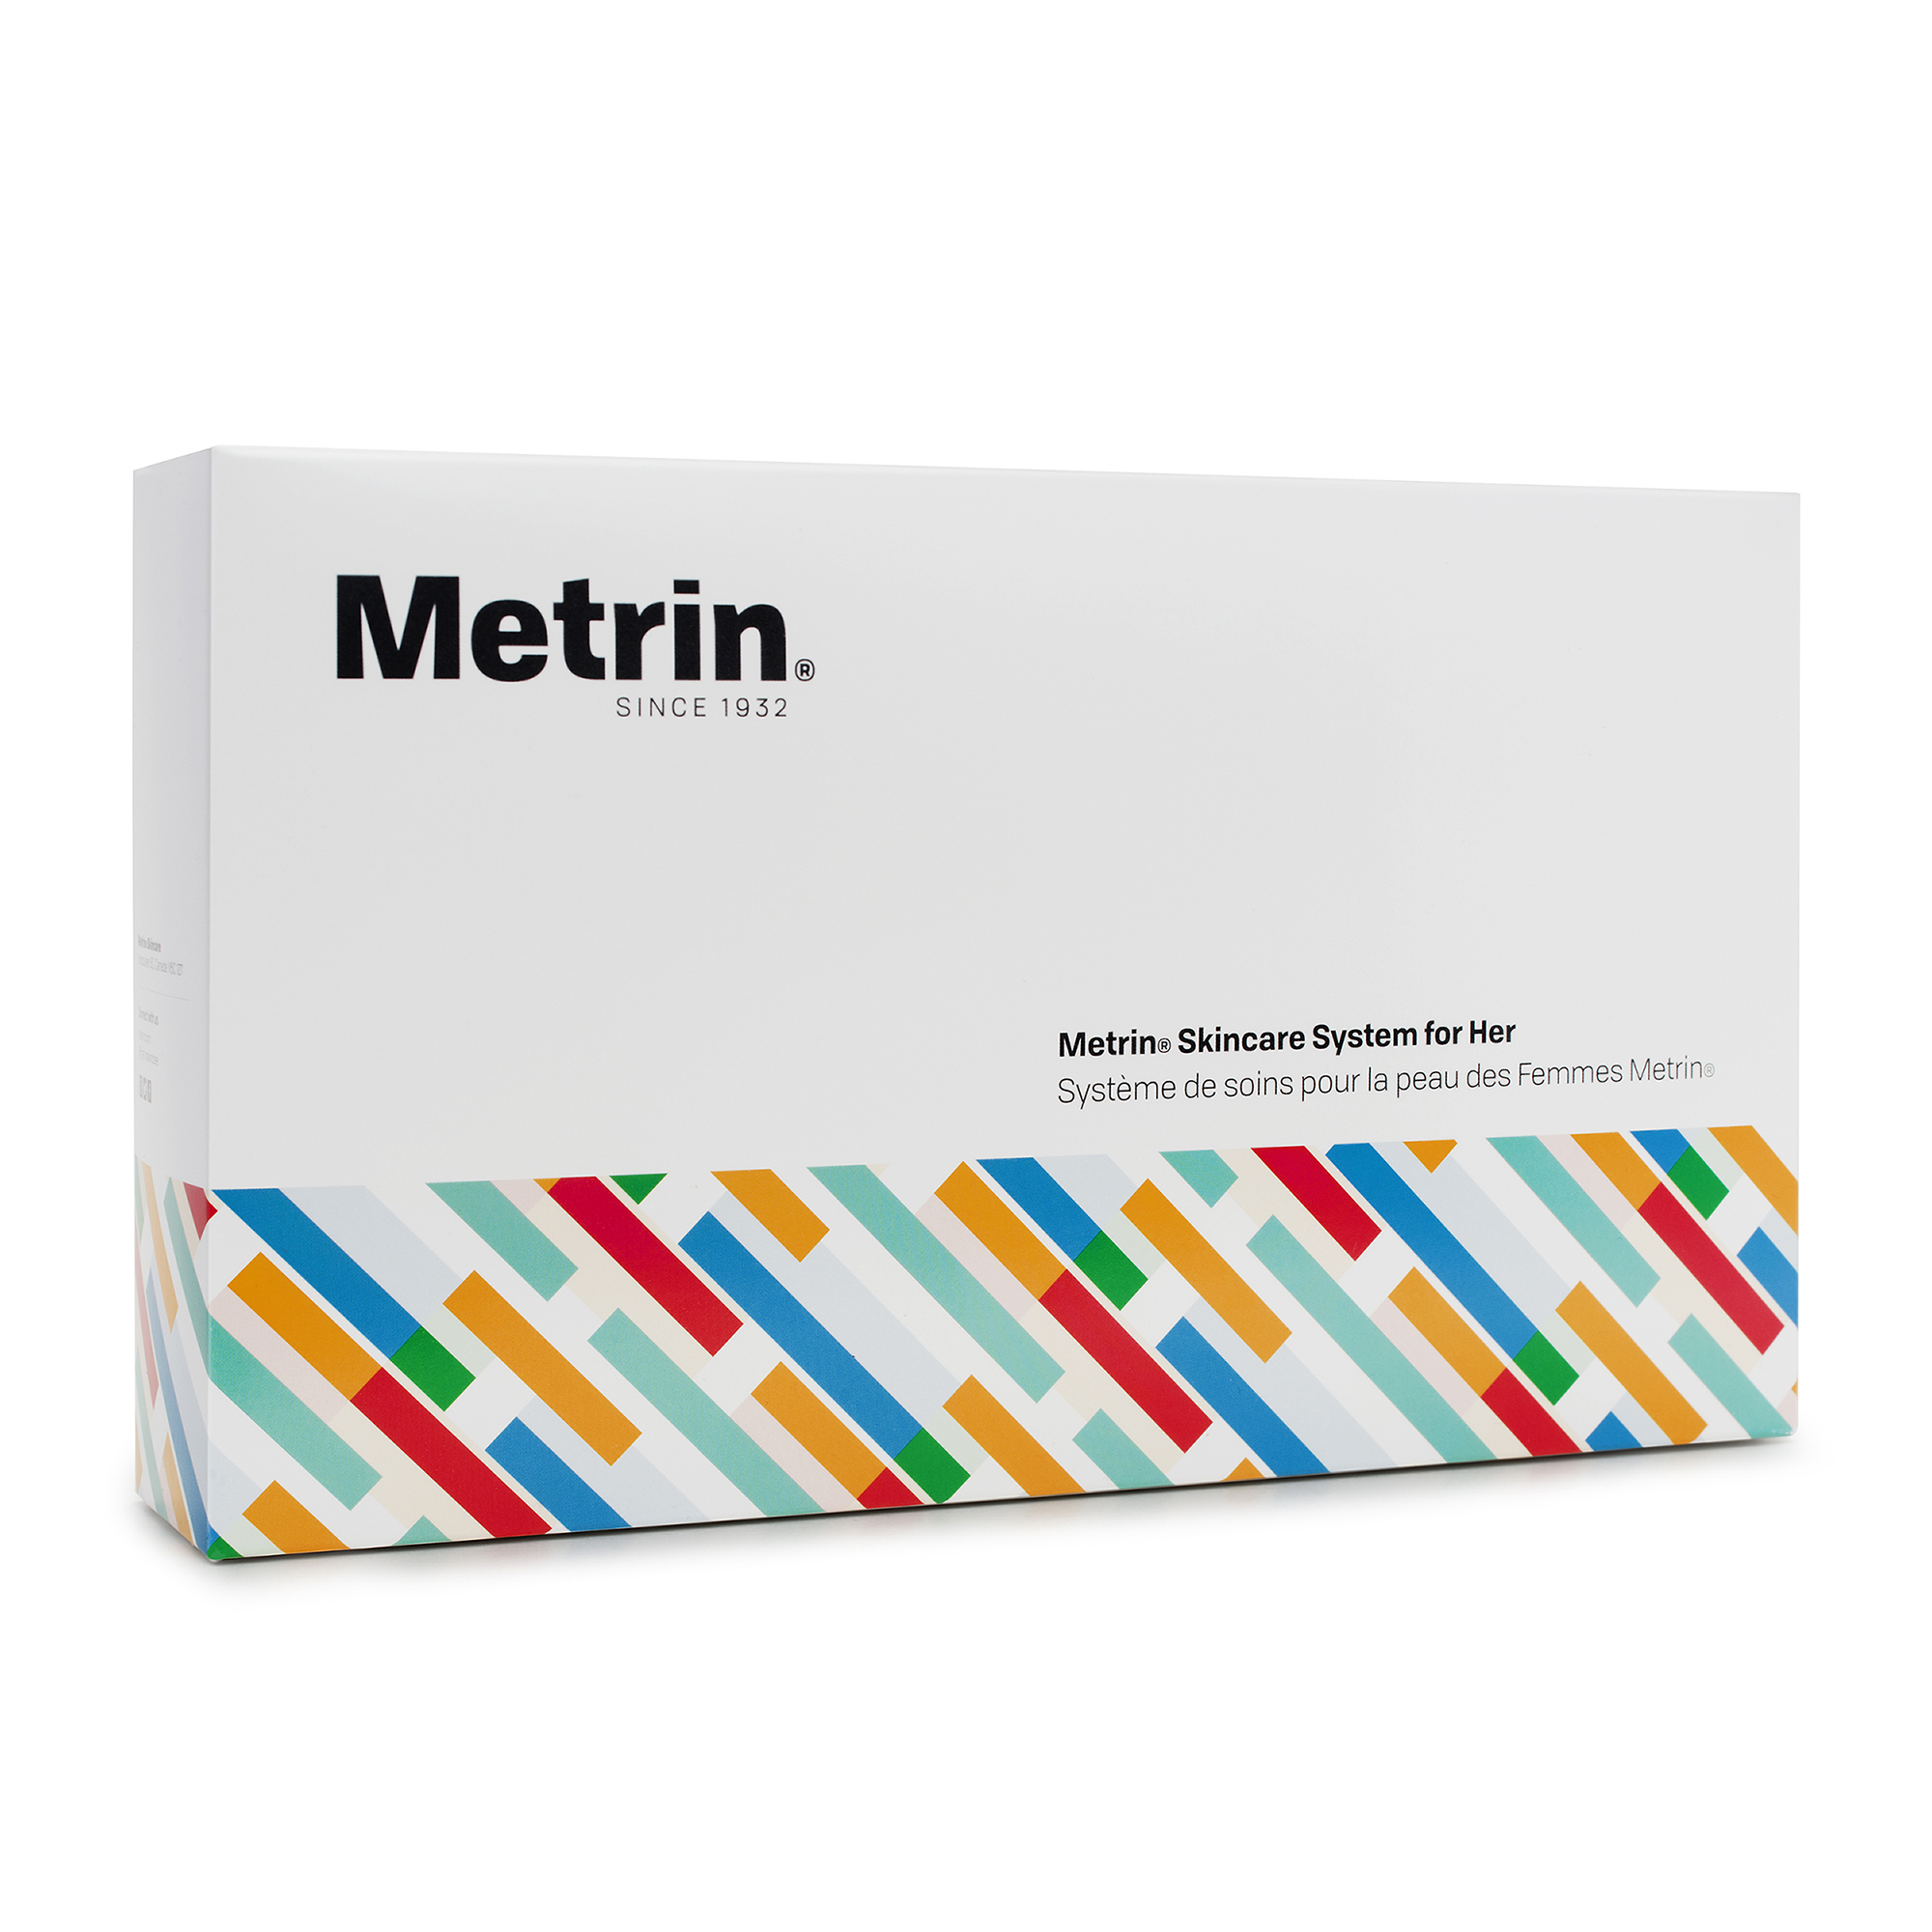 Metrin Women's Value Pack